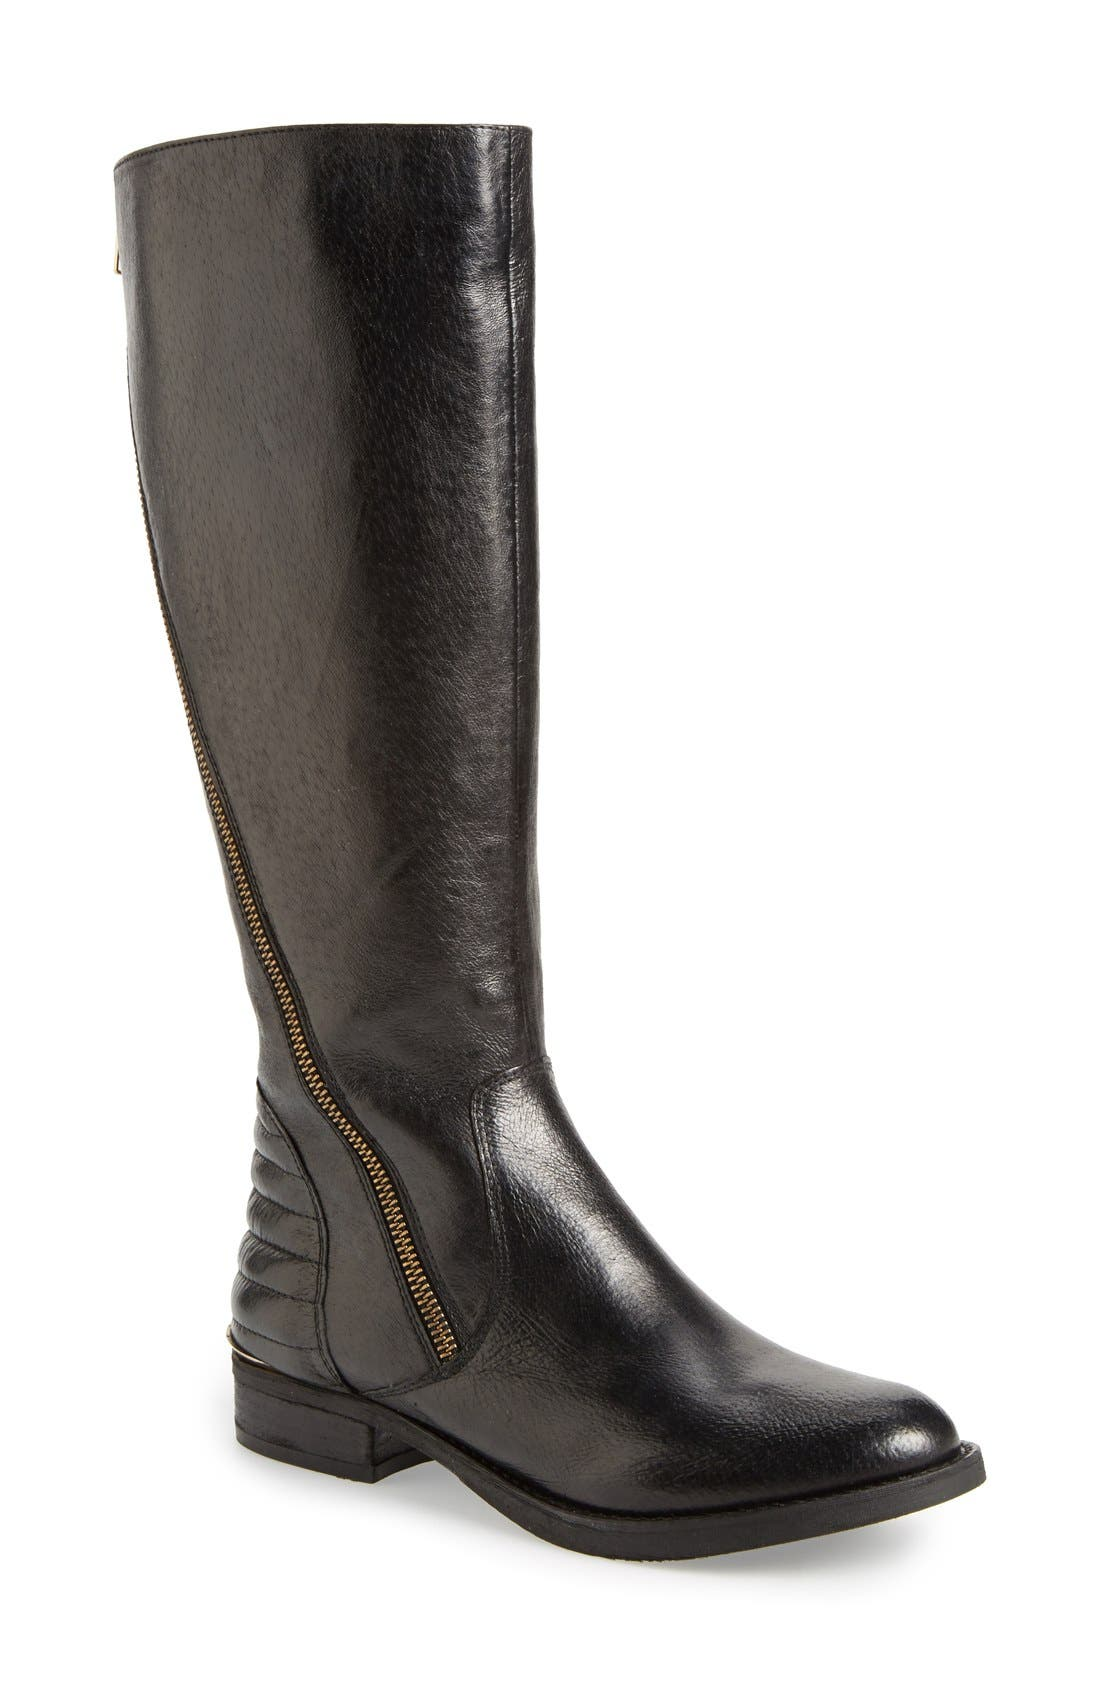 Alternate Image 1 Selected - Steve Madden 'Abbyy' Boot (Women)